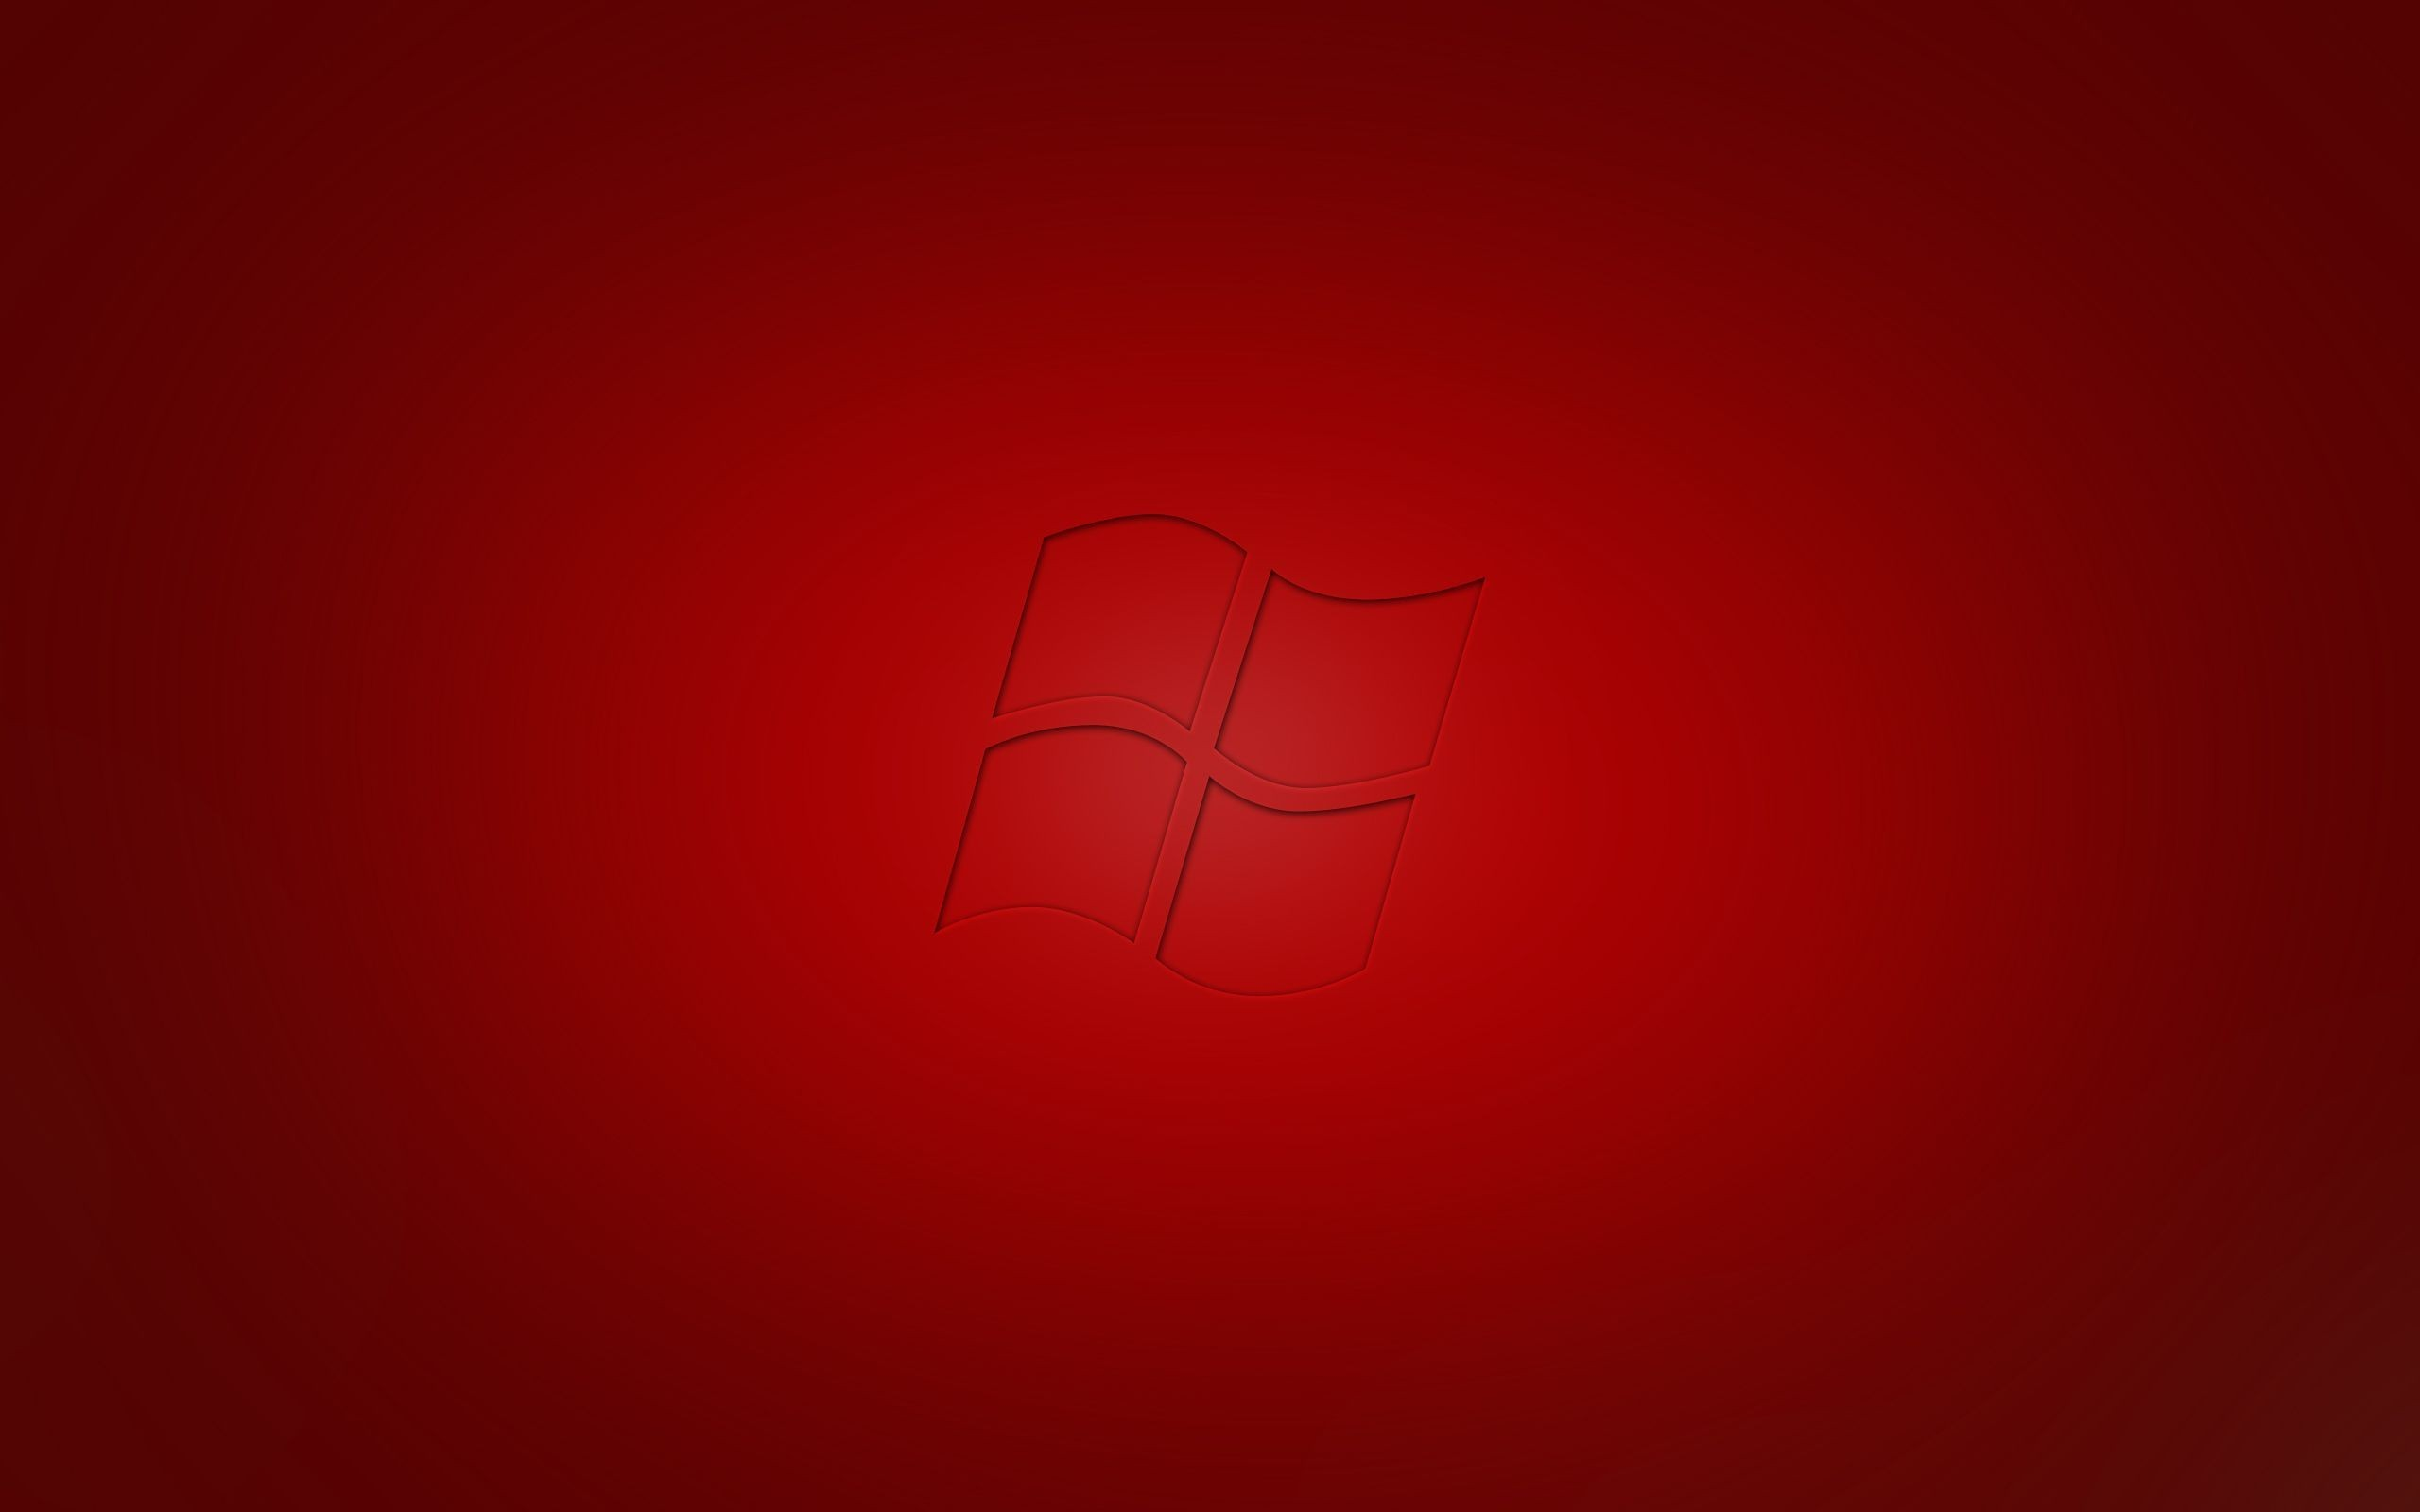 Microsoft Windows 7 Red Wallpaper